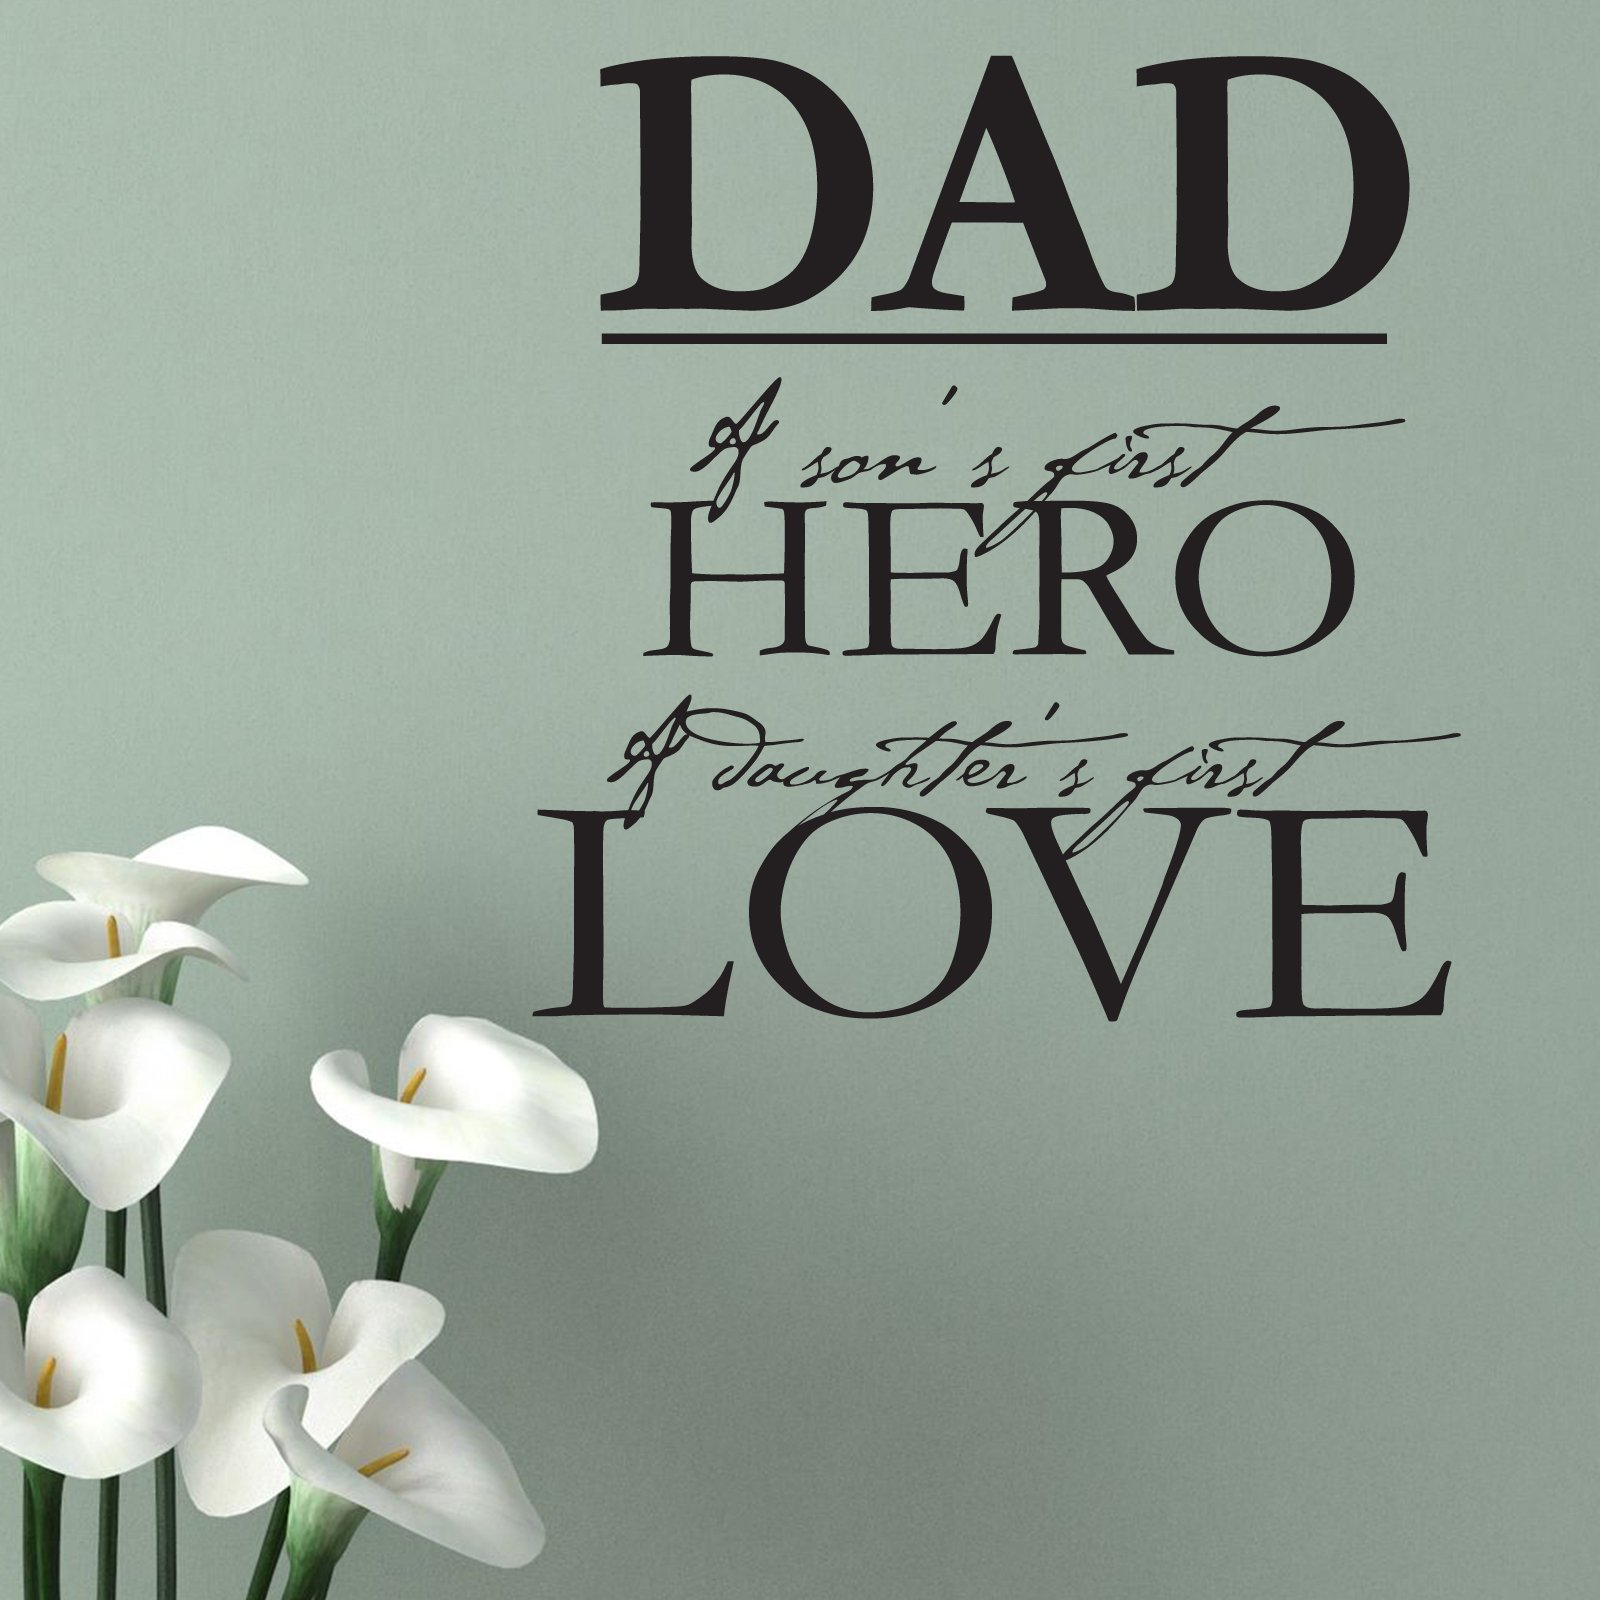 Military Father Daughter Quotes: Dad Hero Quotes. QuotesGram